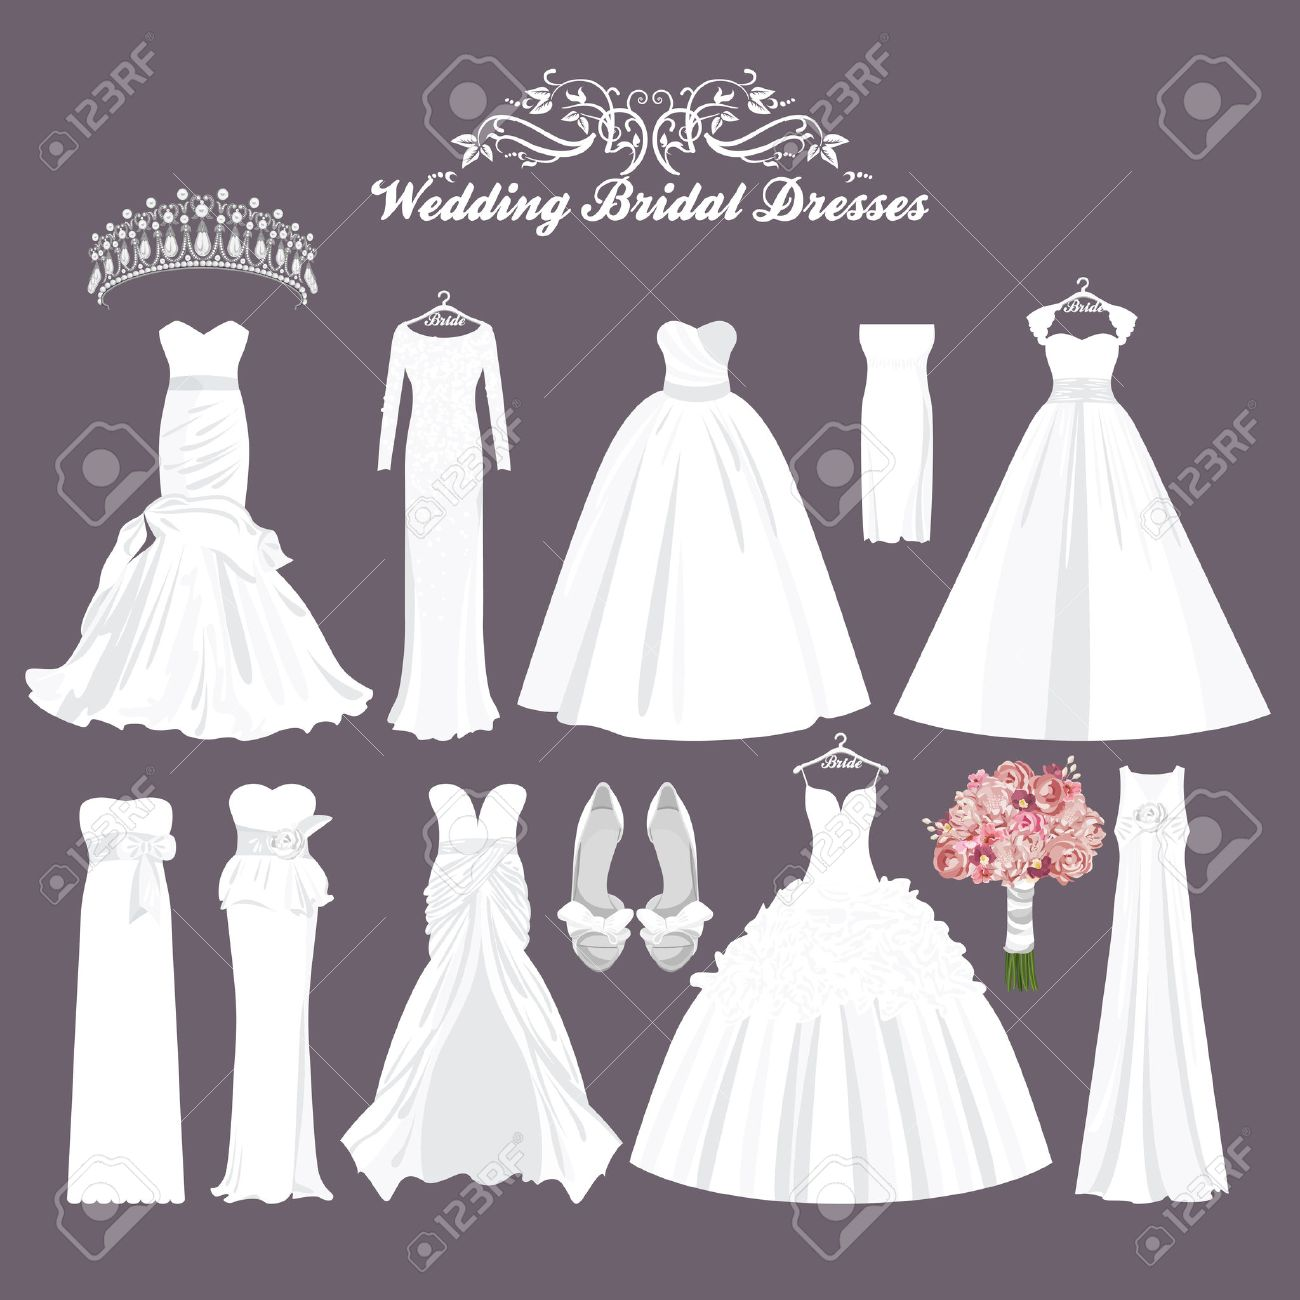 High Quality Vector Wedding Dresses In Different Styles. Fashion Bride Dress. White Dress,  Accessories Set